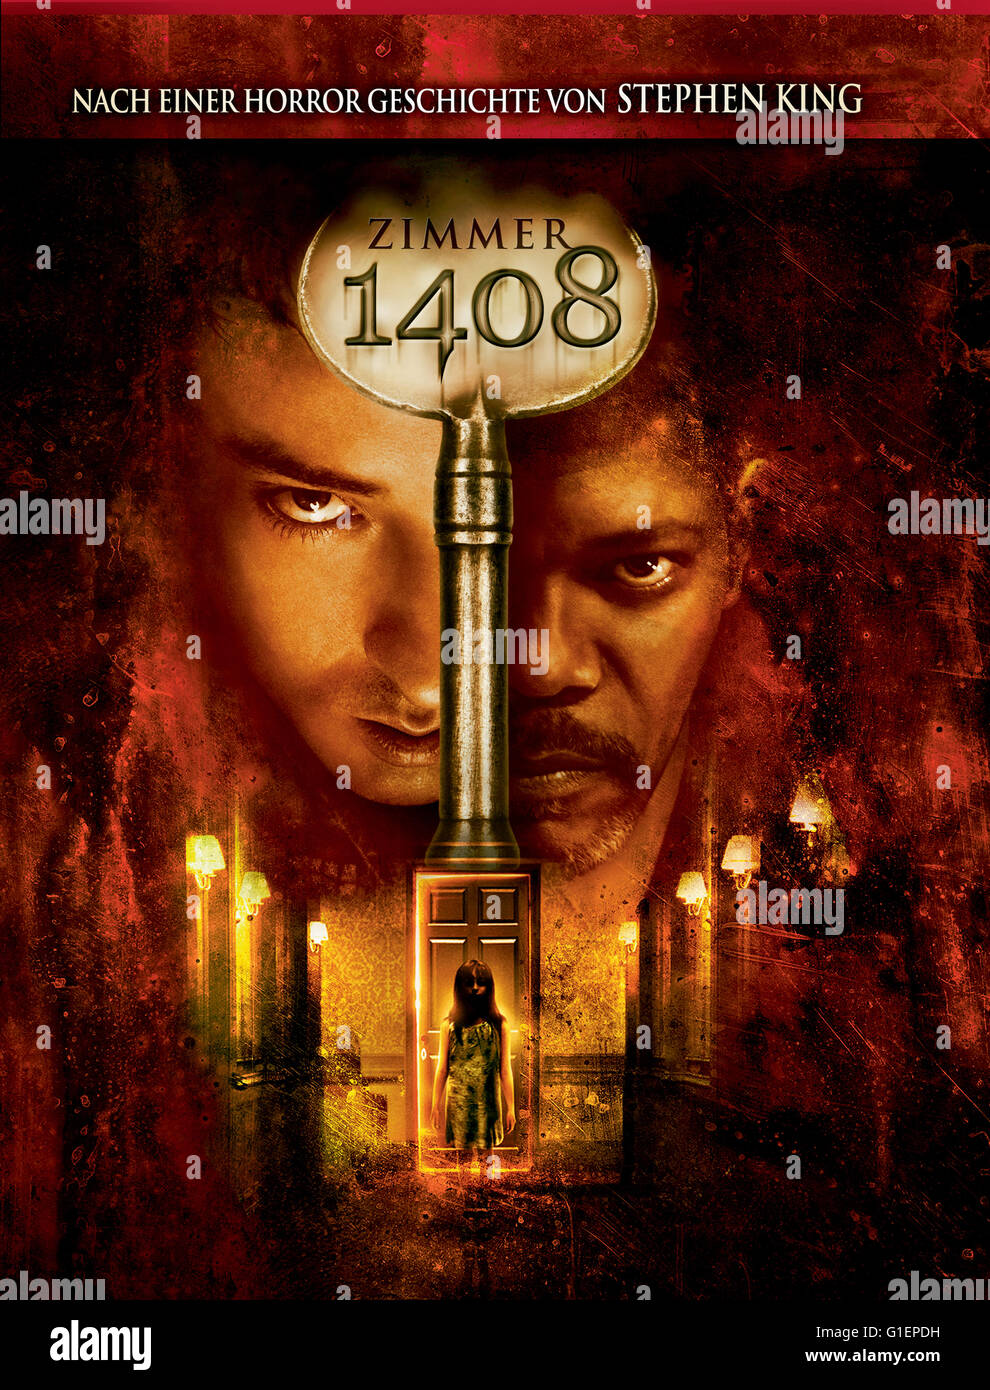 1408 movie download in english